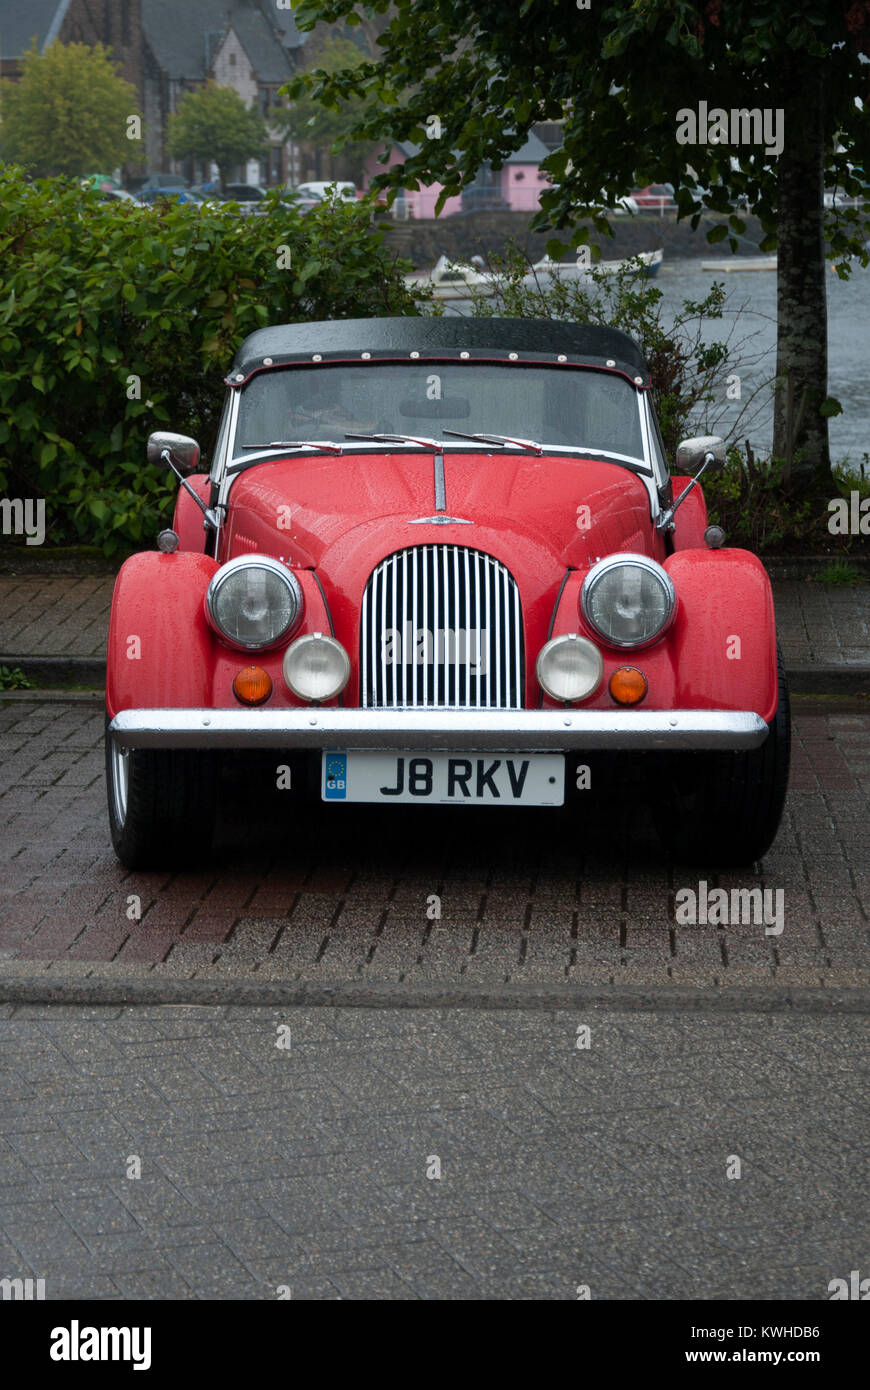 1997 Red Morgan 4/4 Tourer Convertible Sports Car front portrait view red 1997 morgan motor company 1.8 1800 cc - Stock Image